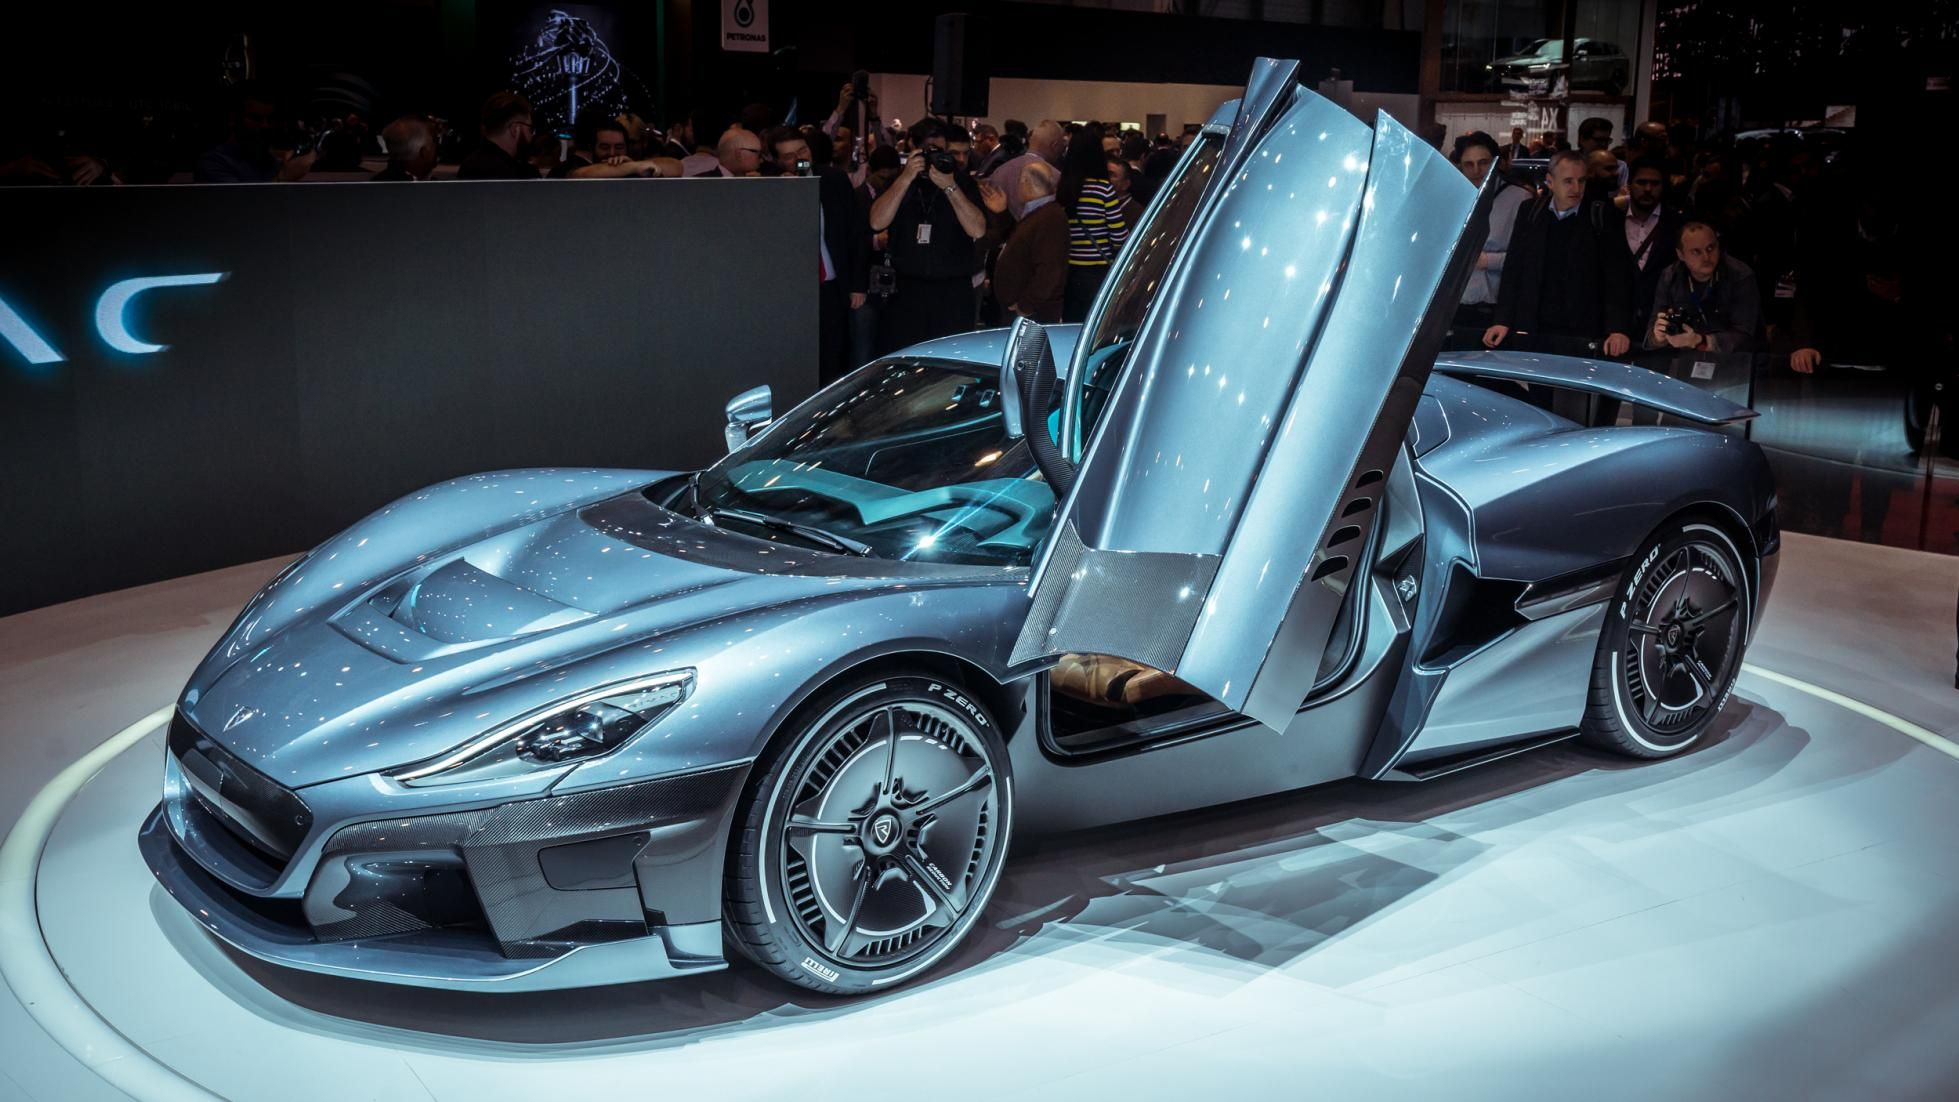 The Rimac C Two Is A 258mph Self Driving Electric Hypercar Self Driving Car Electricity